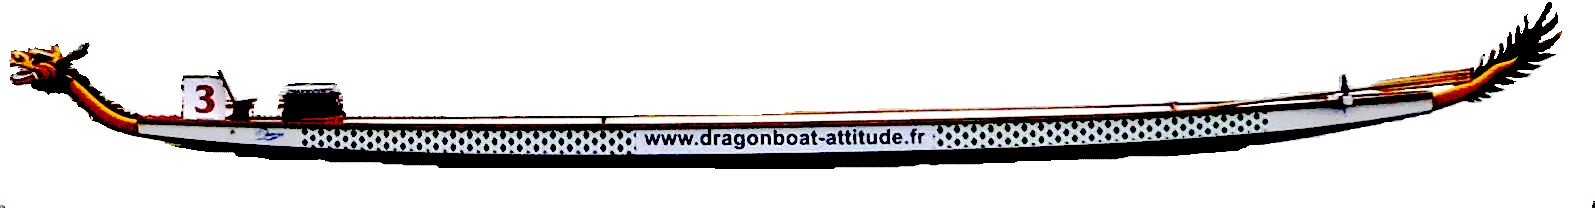 DRAGON BOAT SWIFT